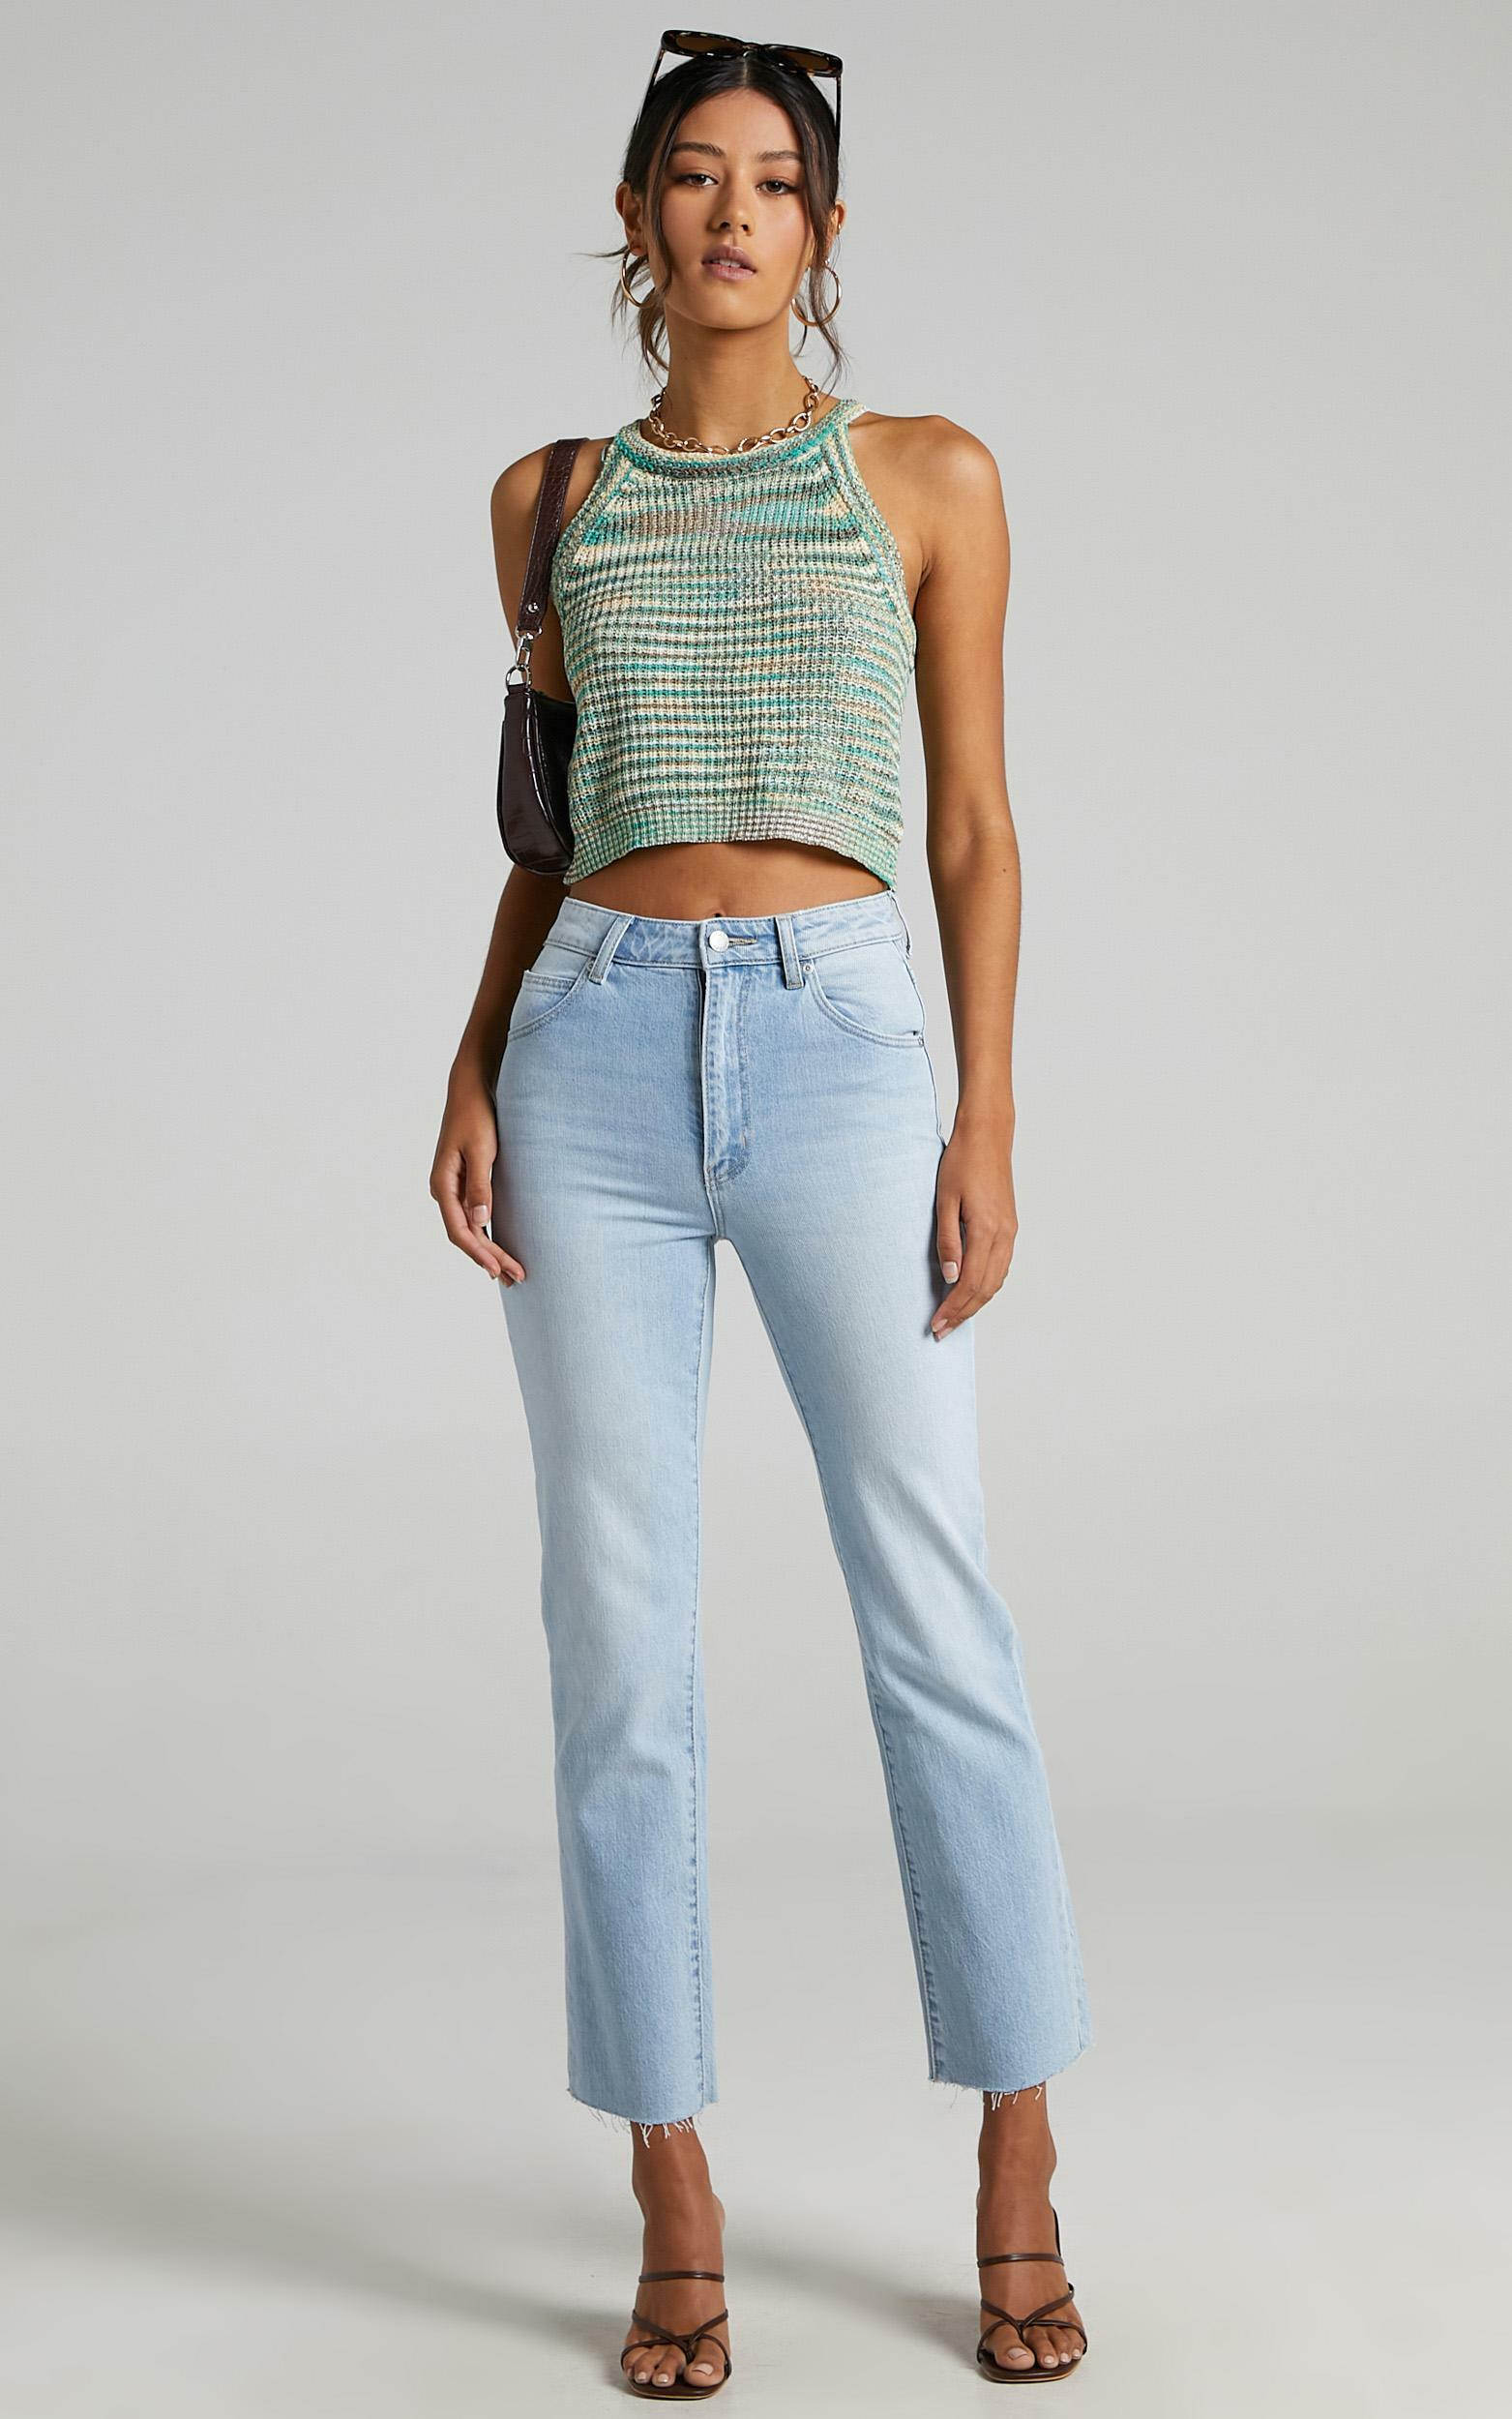 Bexley Top in Green Space Dye - S/M, GRN1, hi-res image number null